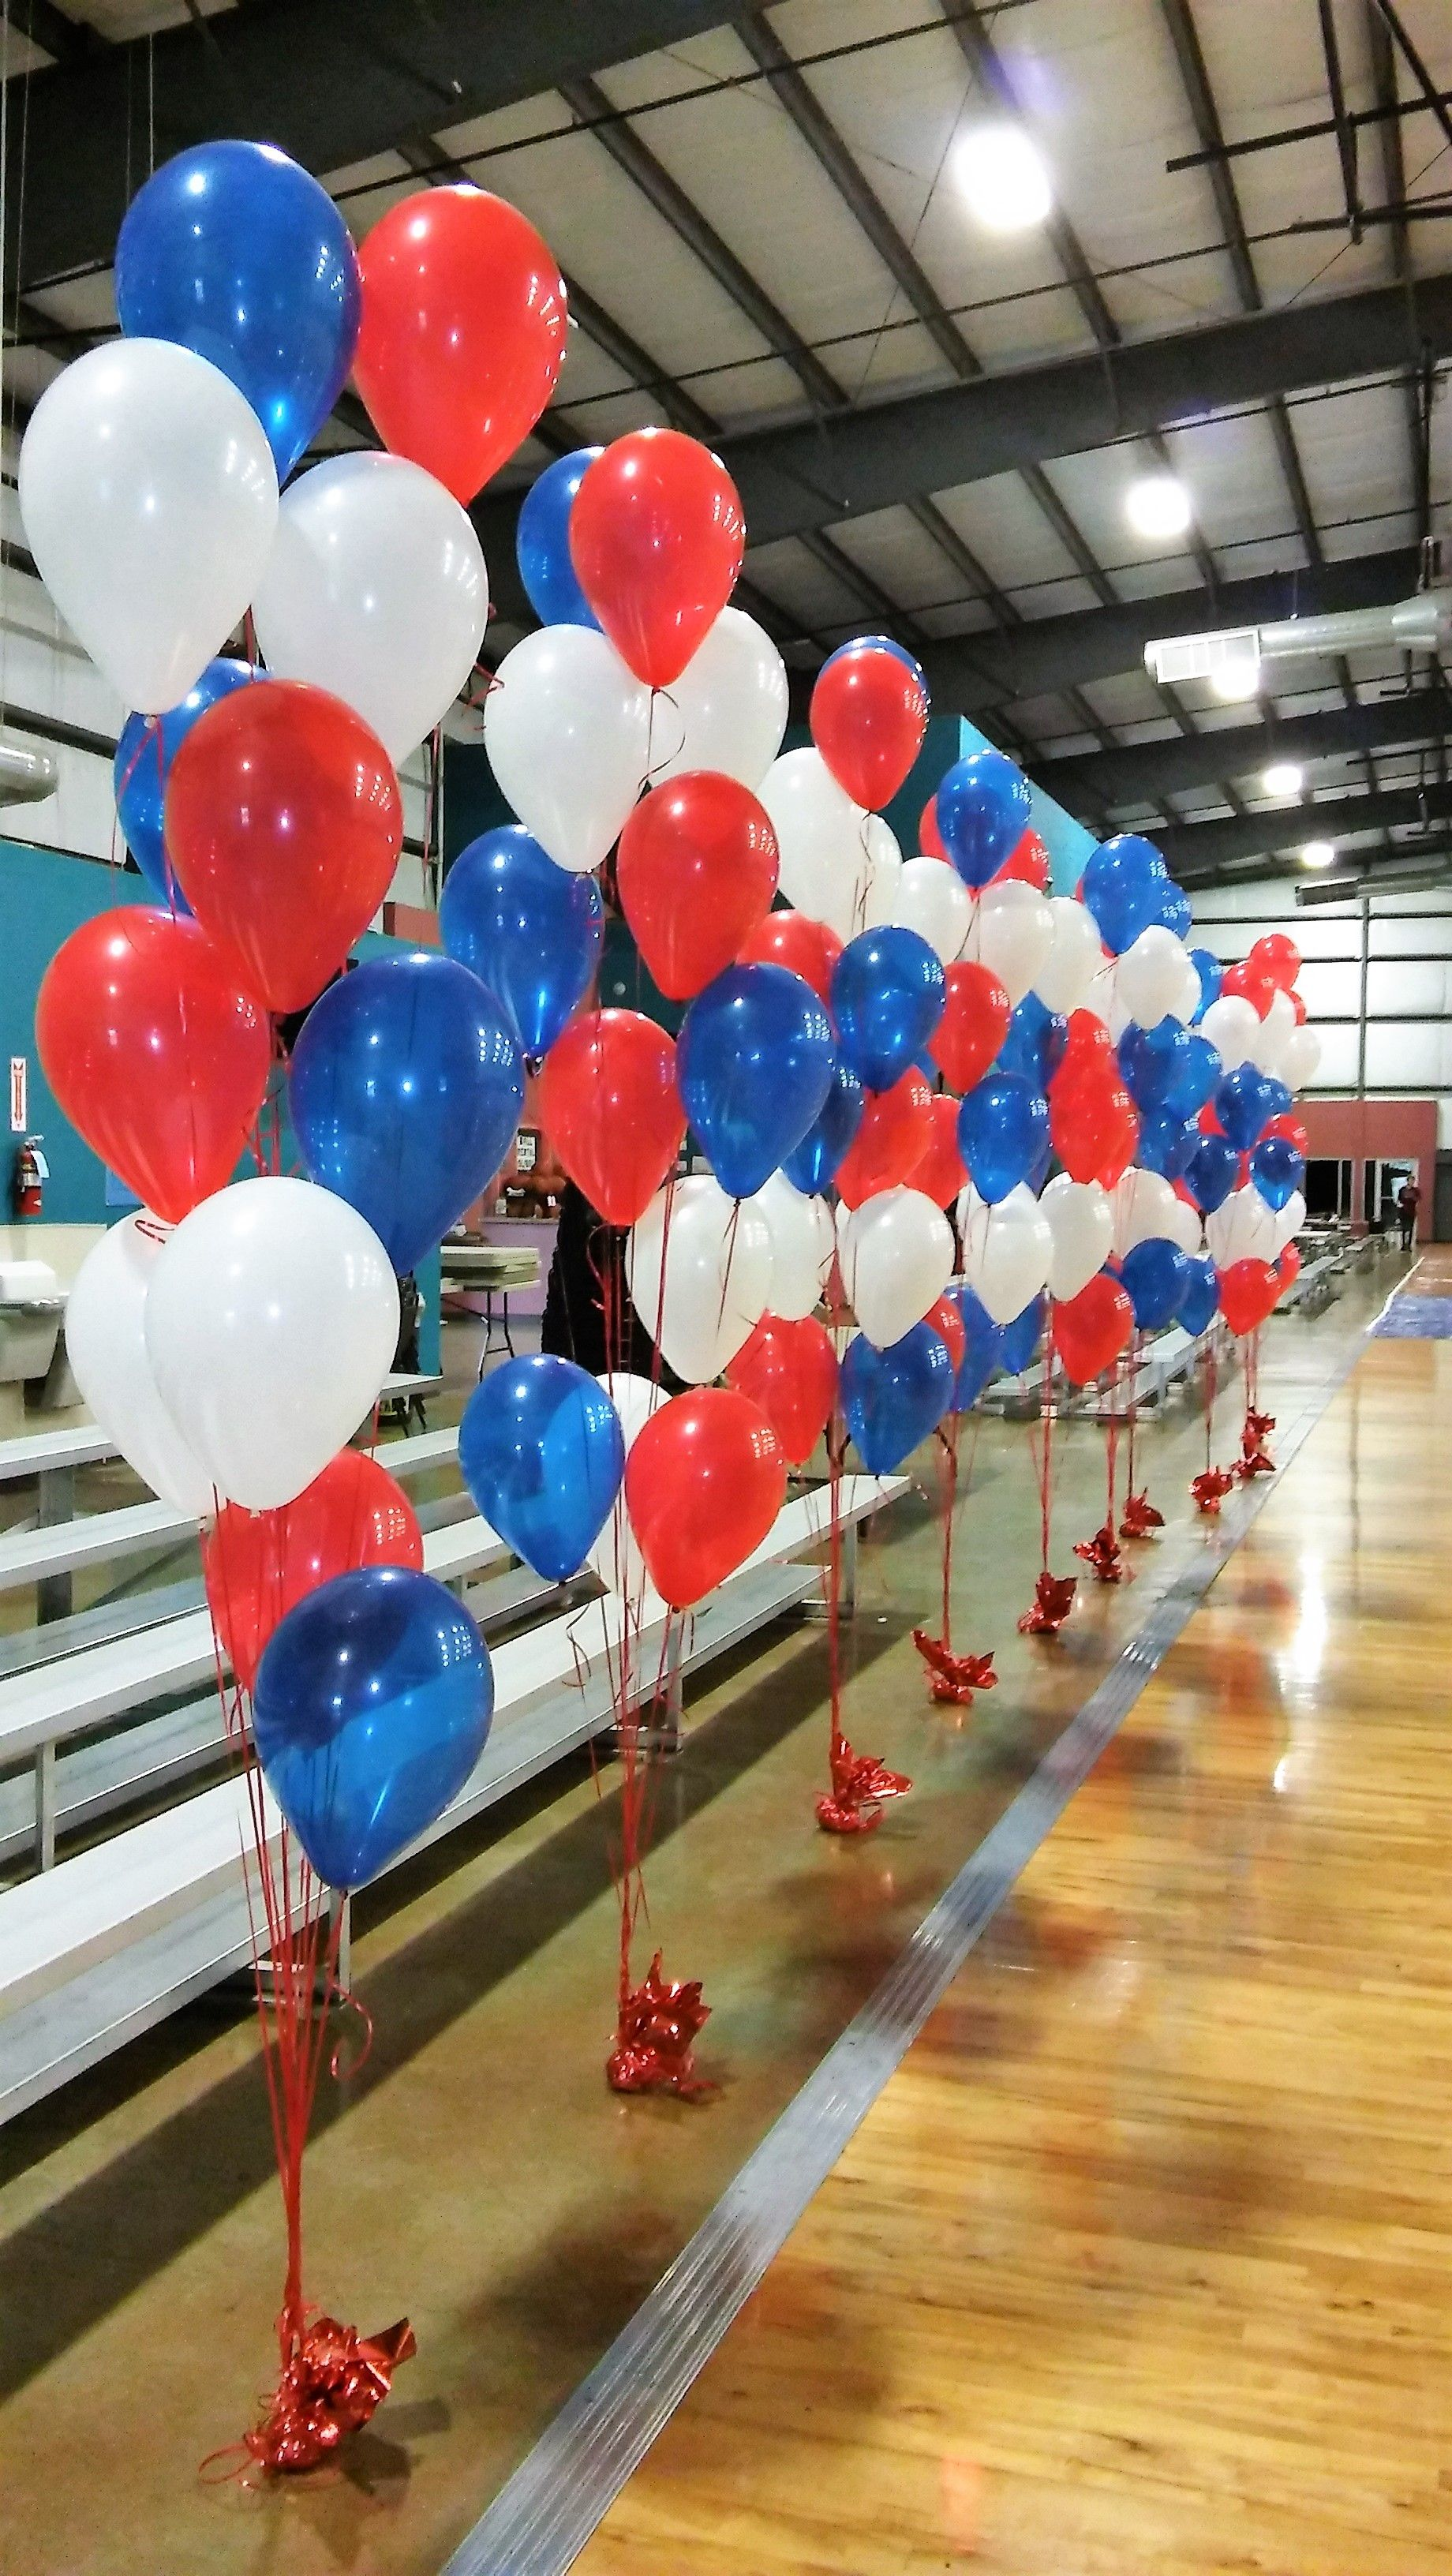 12 Balloon Floor Arrangements For Gymnastic Event Color Scheme